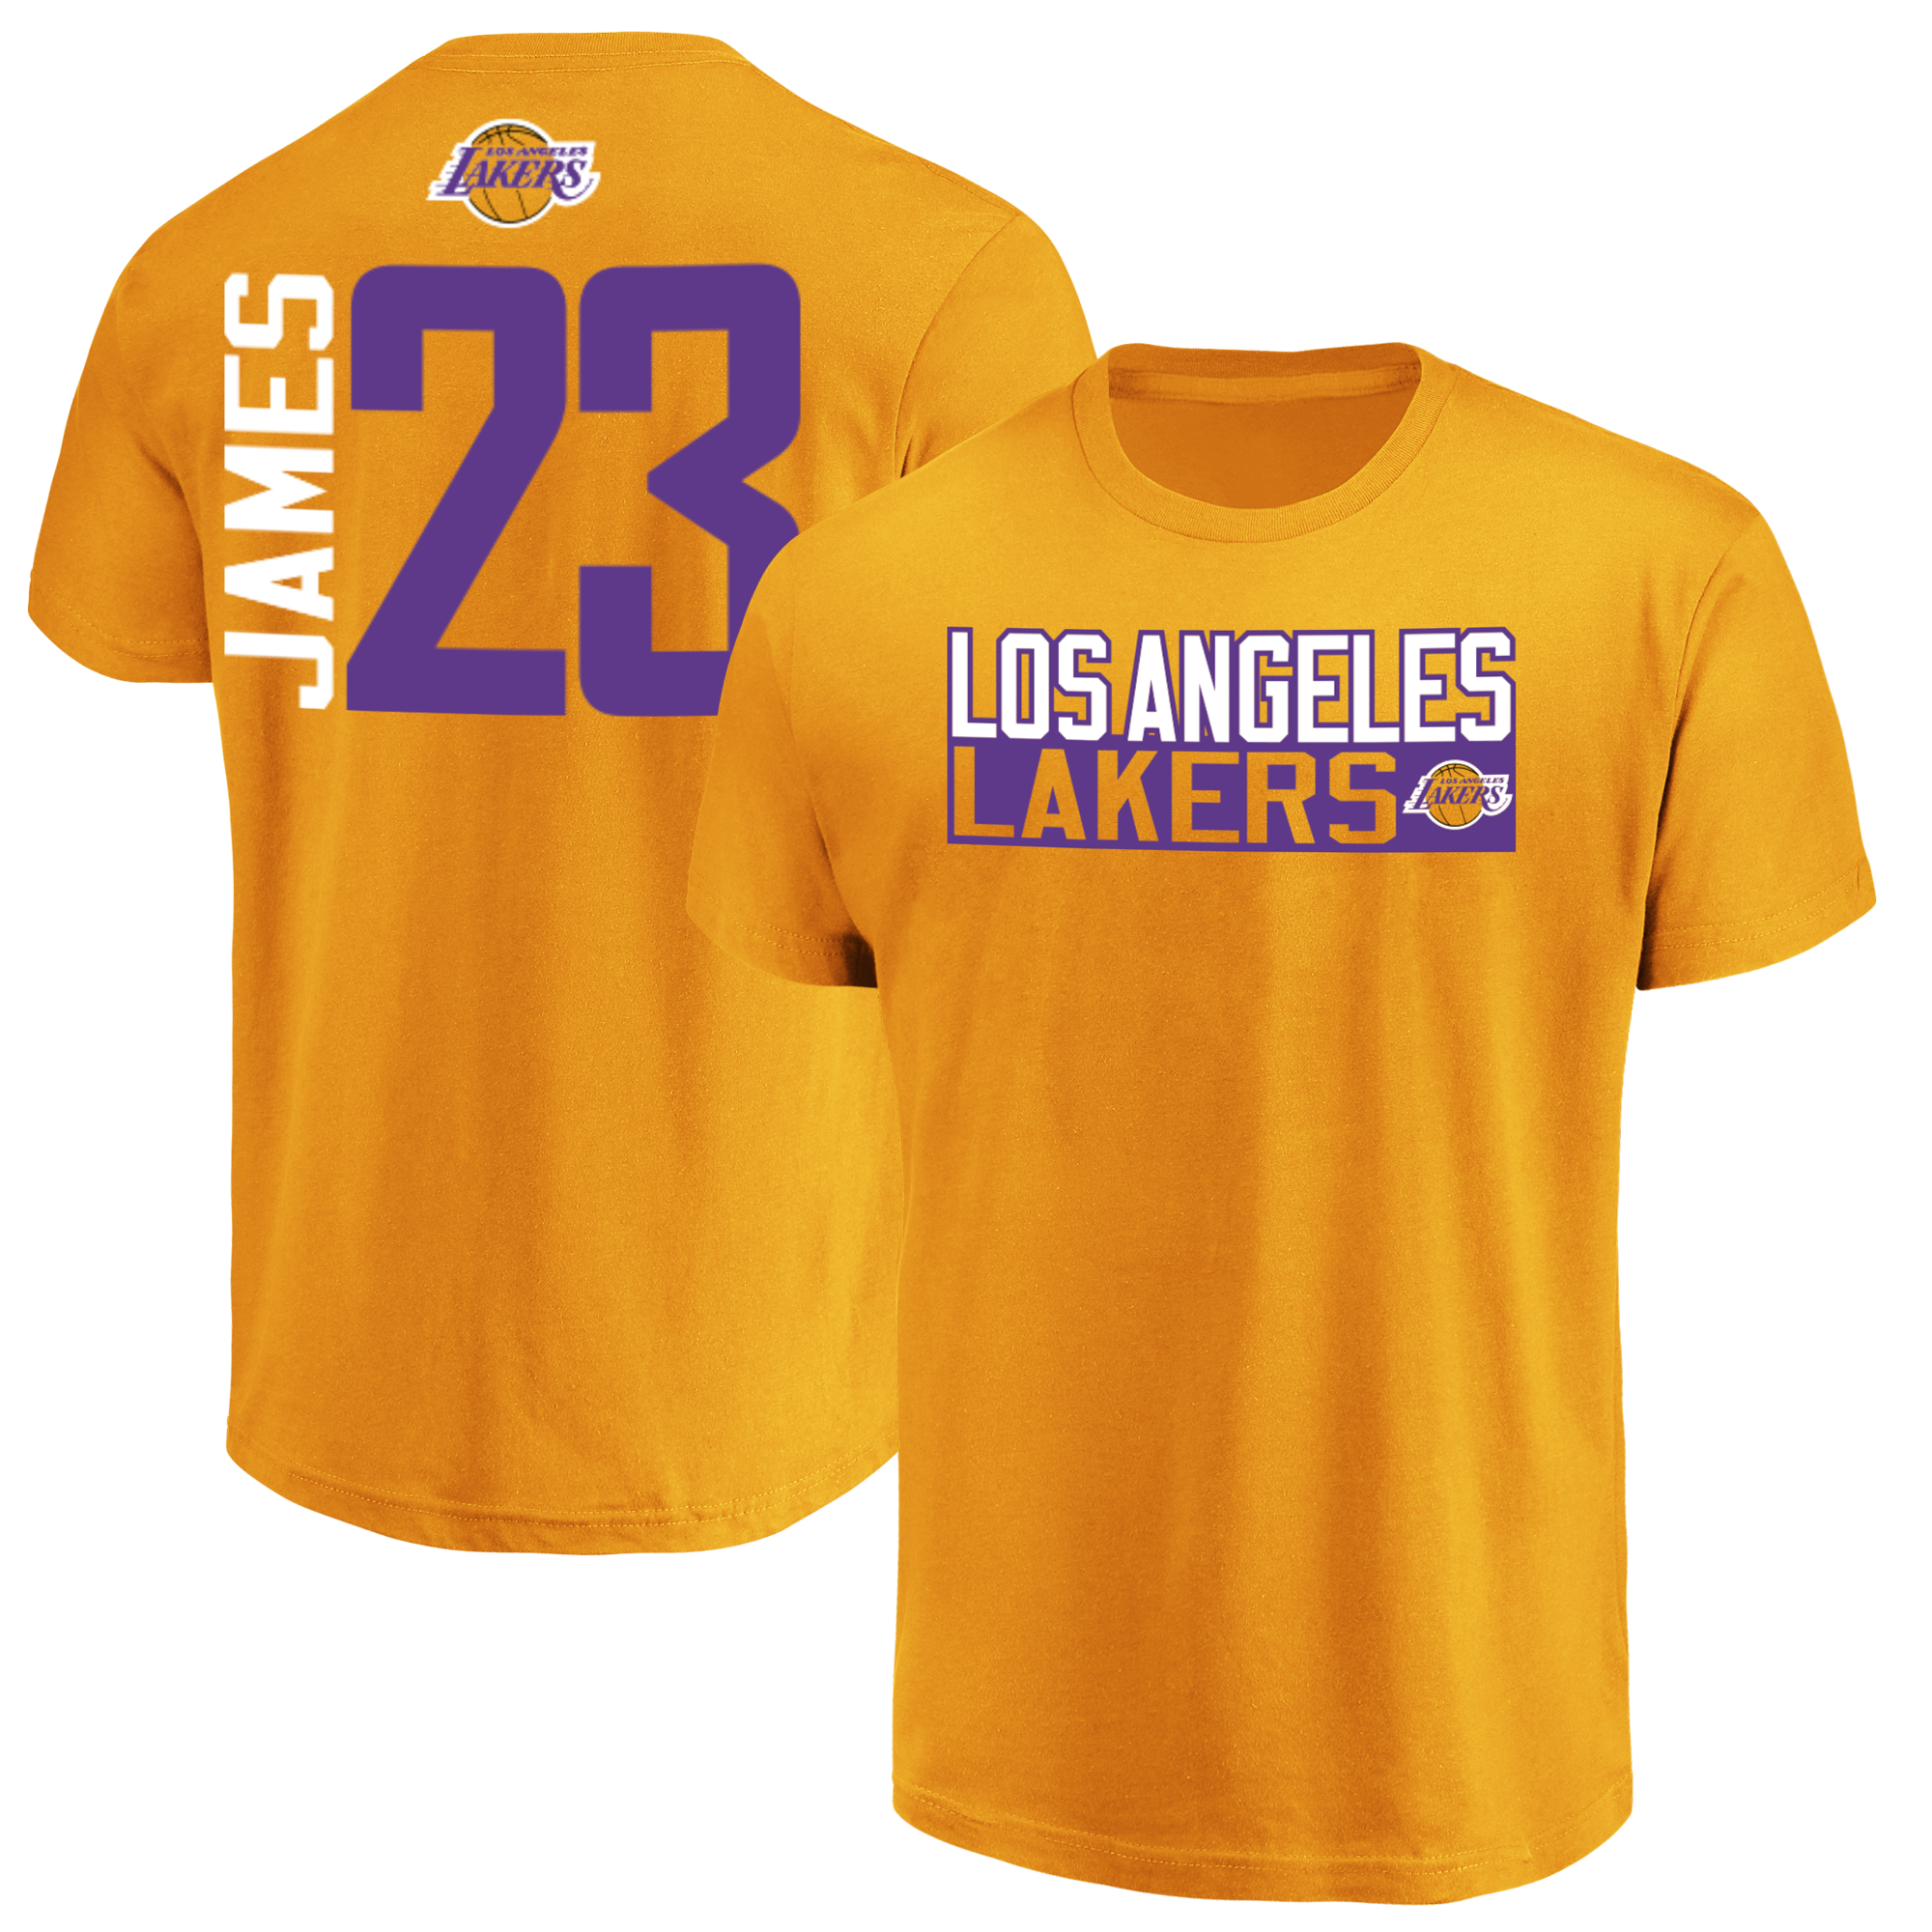 f360401bf44 LeBron James Los Angeles Lakers Majestic Men s Gold Vertical Name and  Number T-Shirt